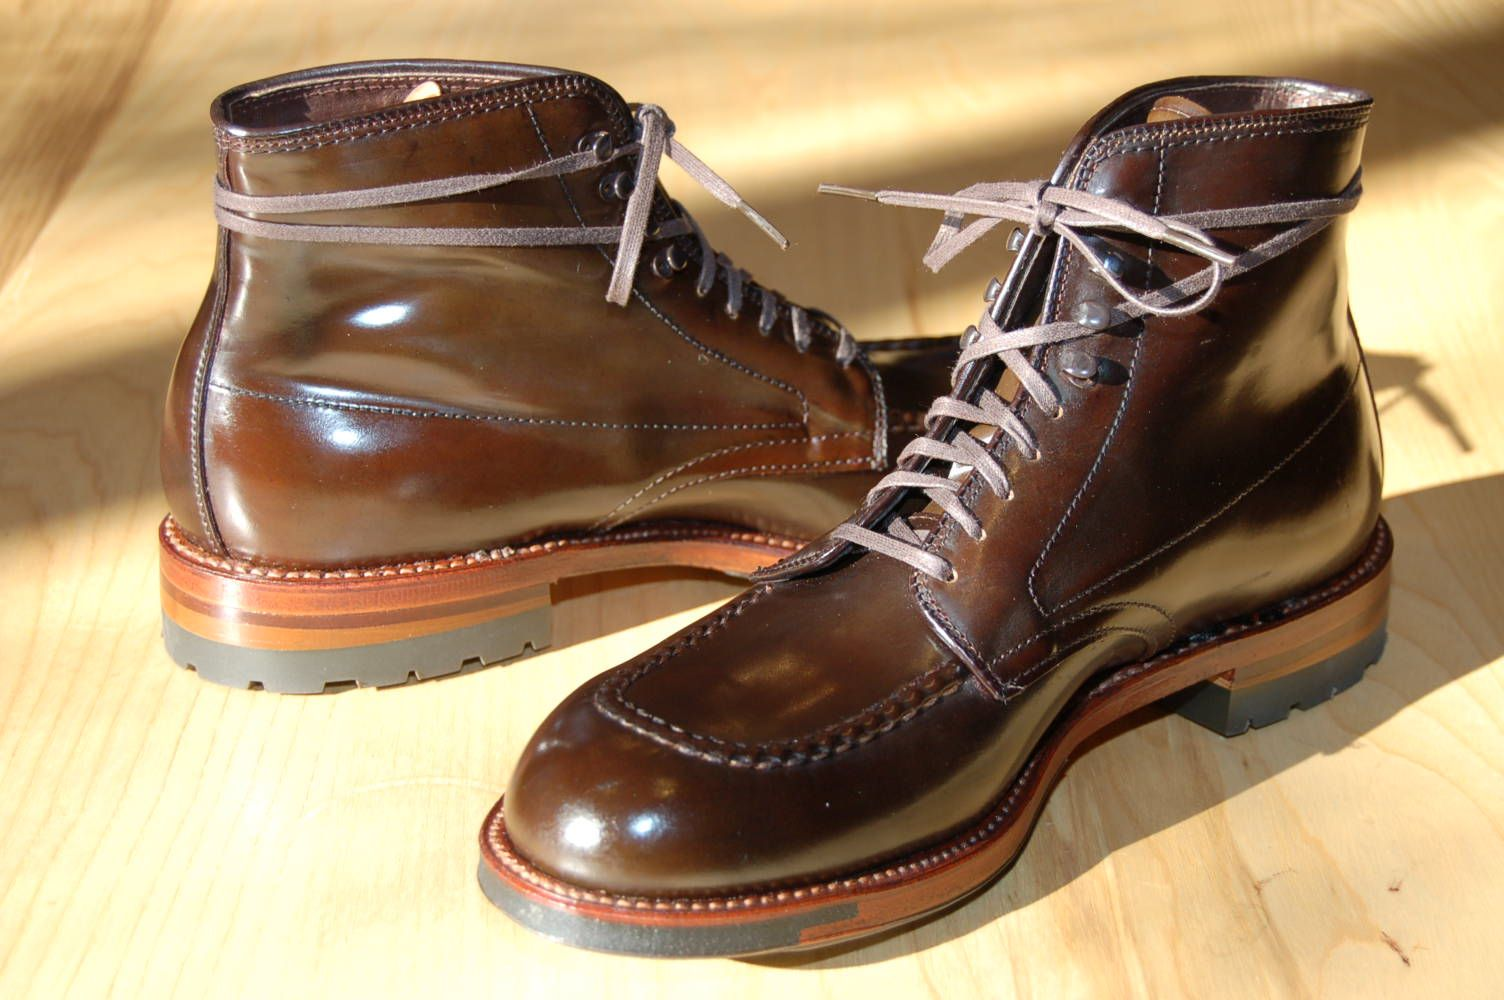 143a3cdf96f Alden Indy boot in cigar shell cordovan. (These are phresh!) | Hot ...